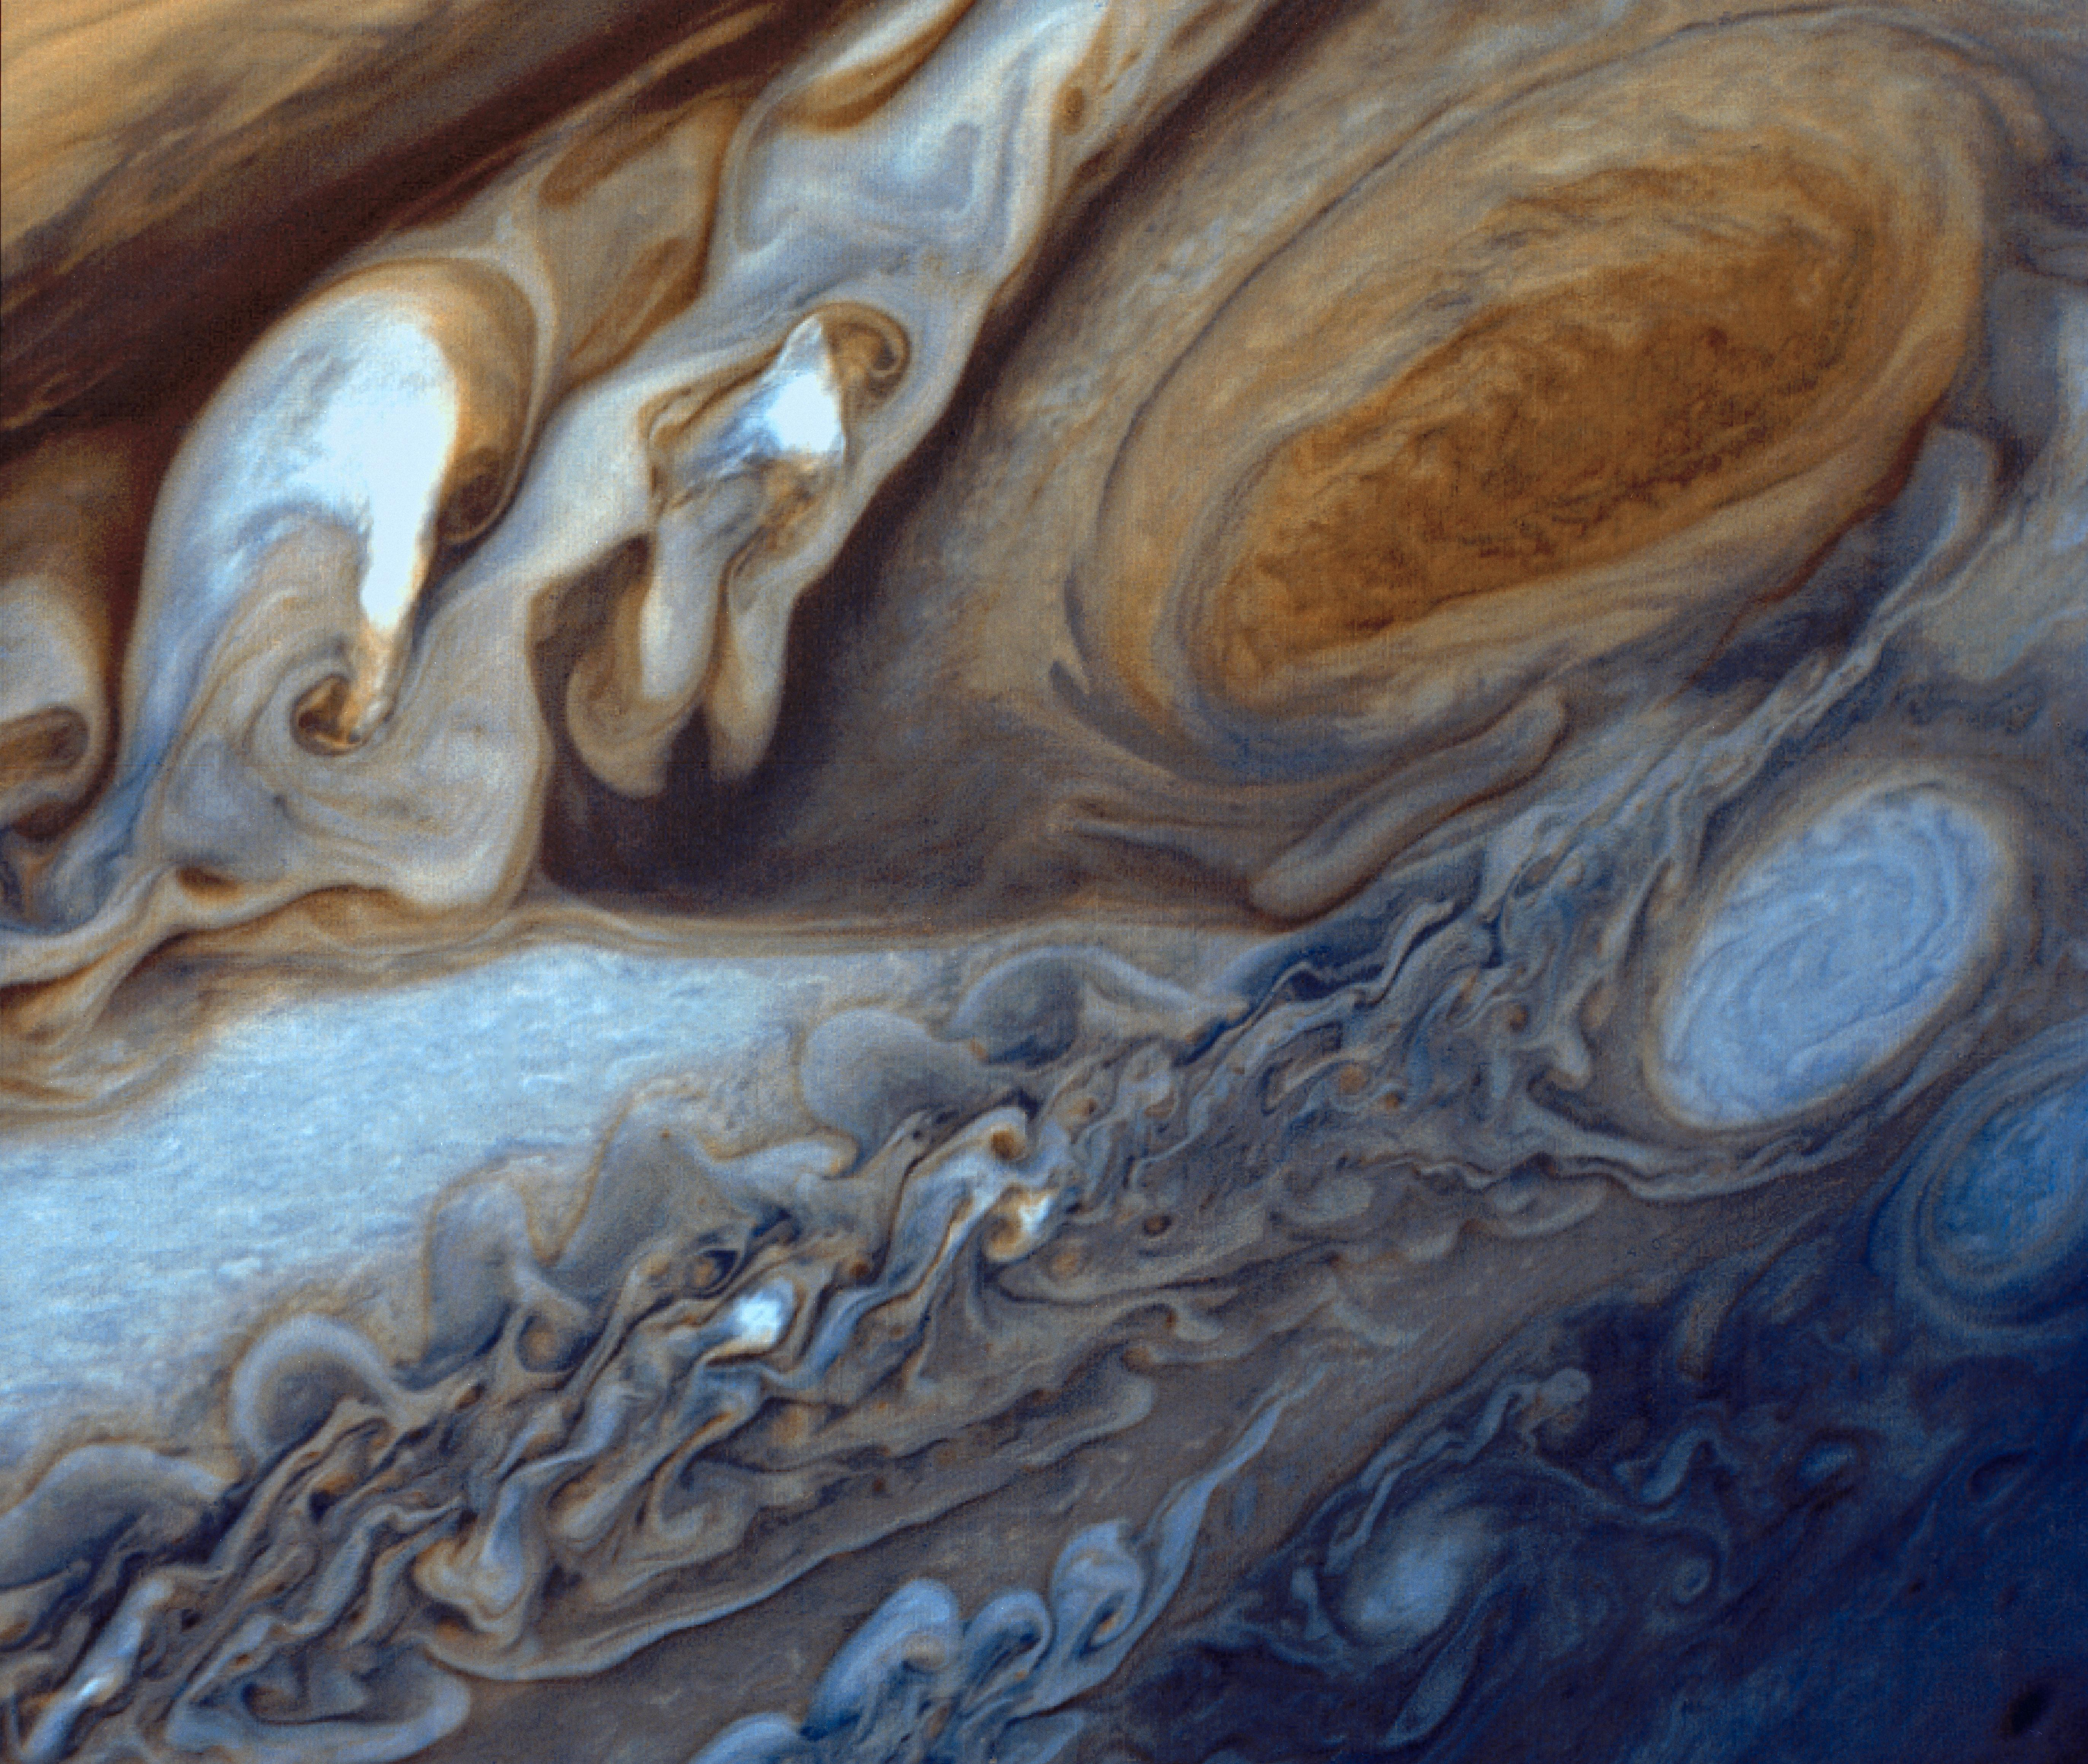 Photo of View of Jupiter's Great Red Spot and swirling clouds near it, taken by Voyager